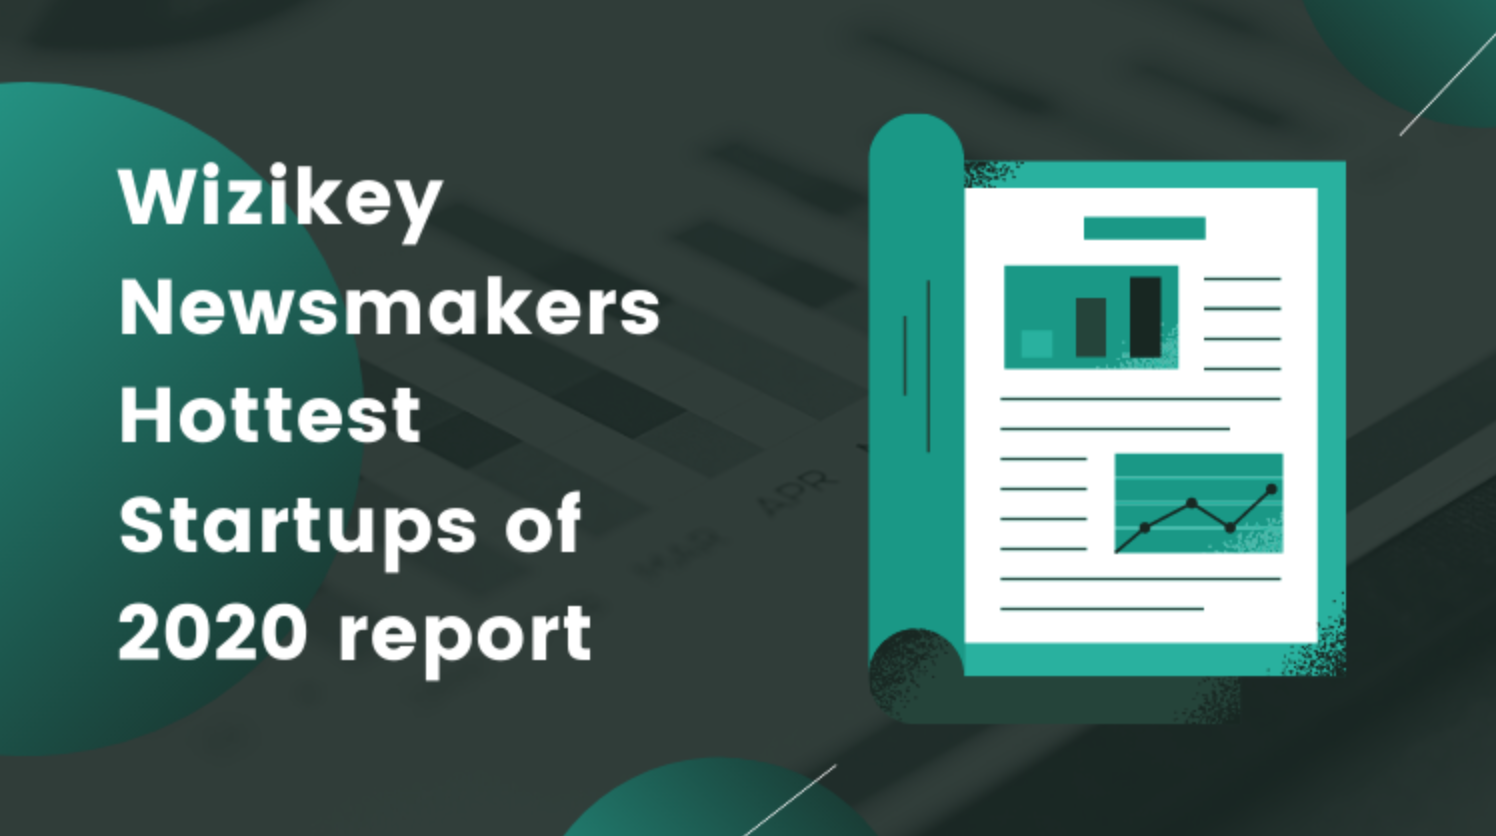 Wizikey Newsmakers | Hottest Startups of 2020 report